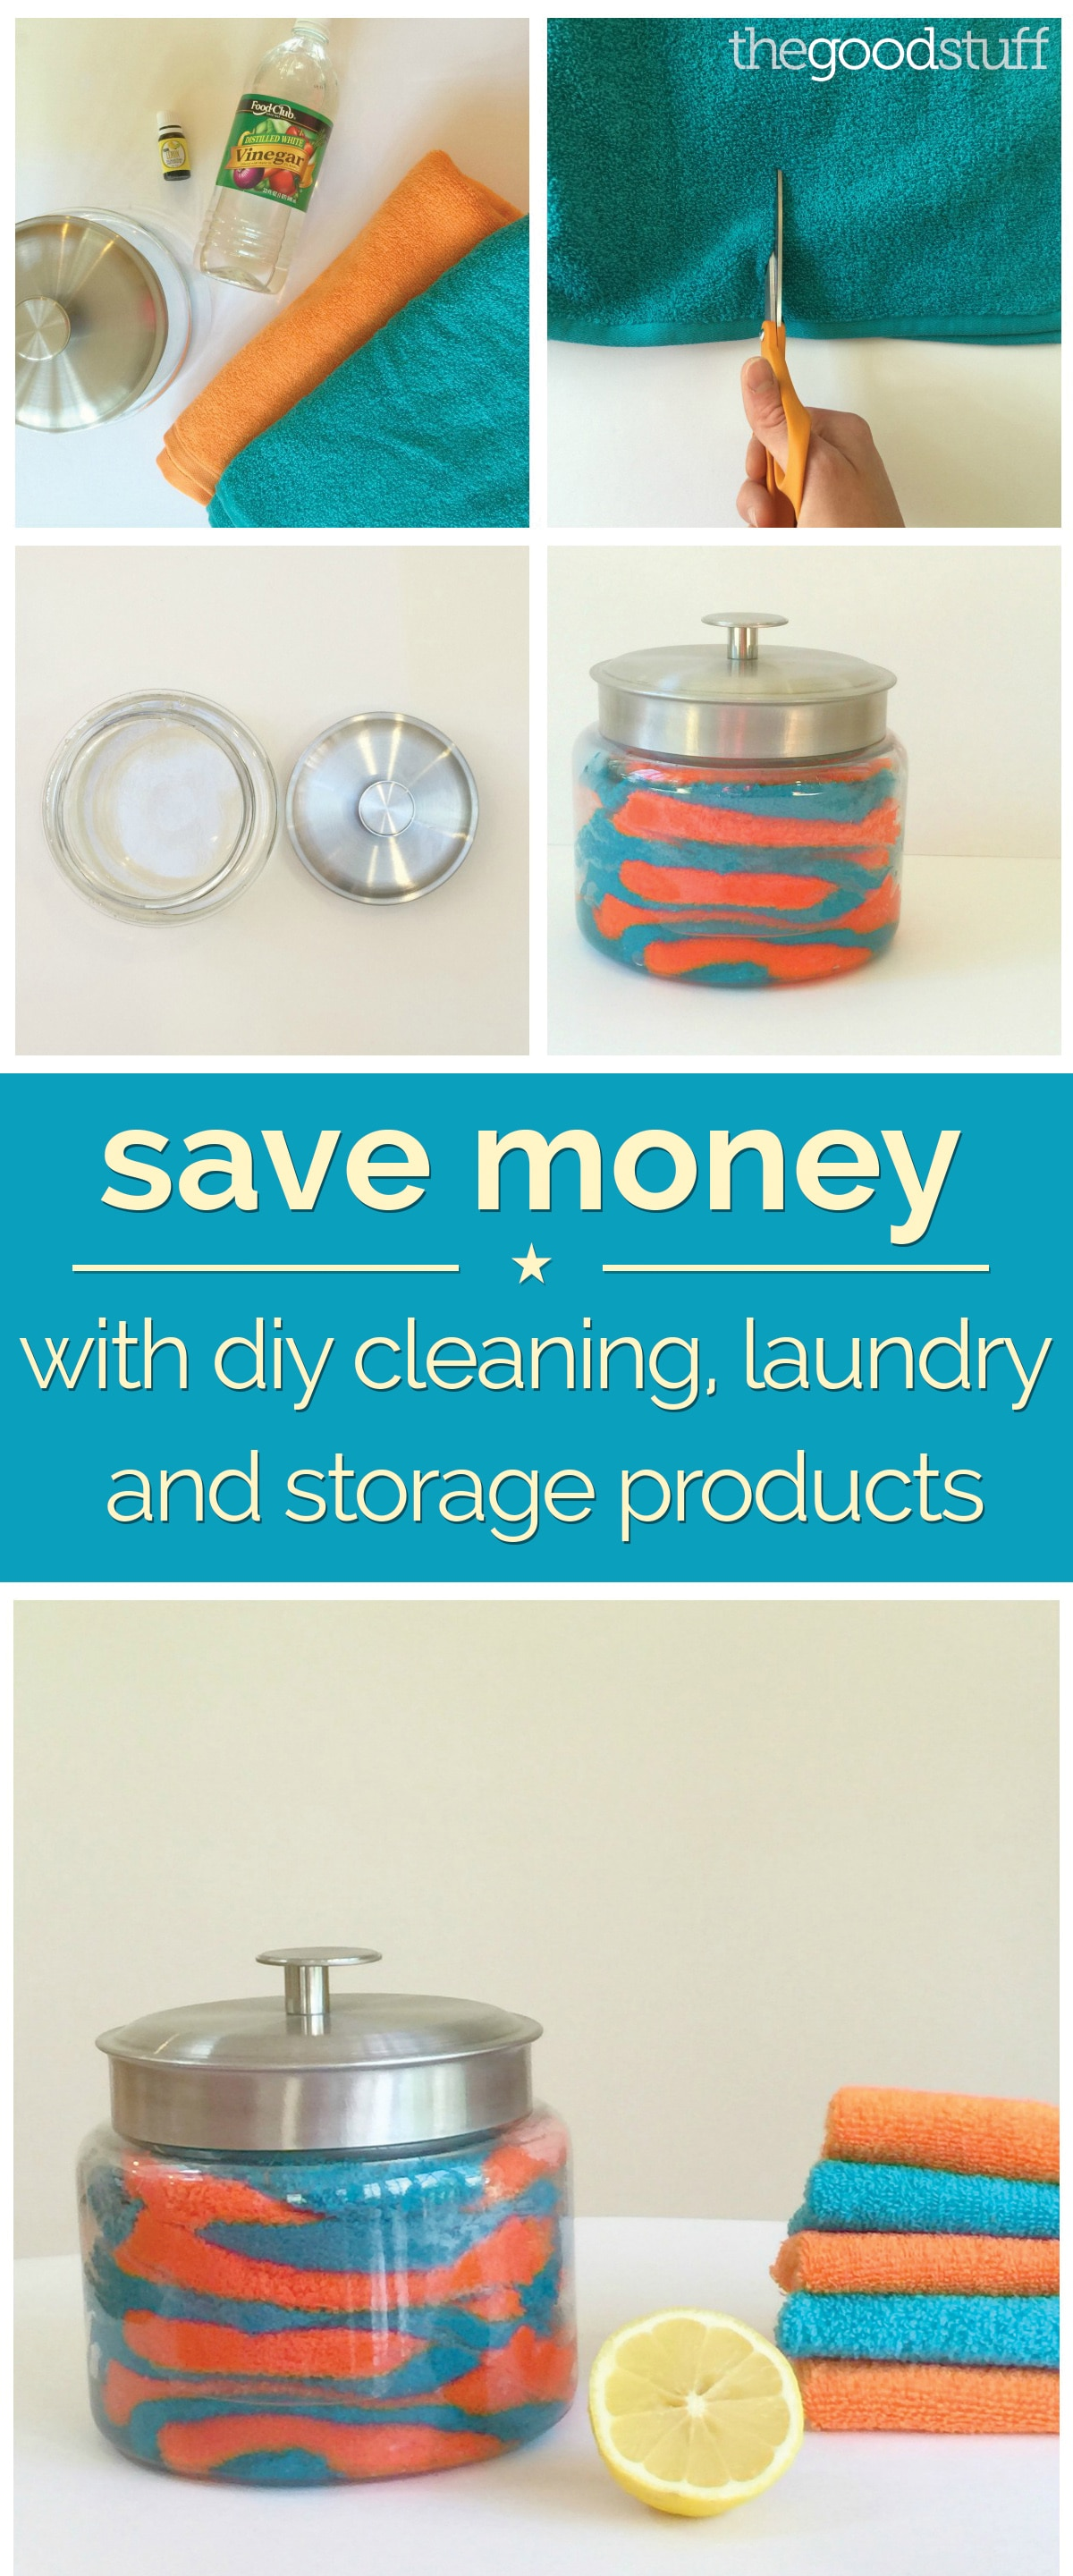 Save Money With DIY Cleaning, Laundry and Storage Products | thegoodstuff